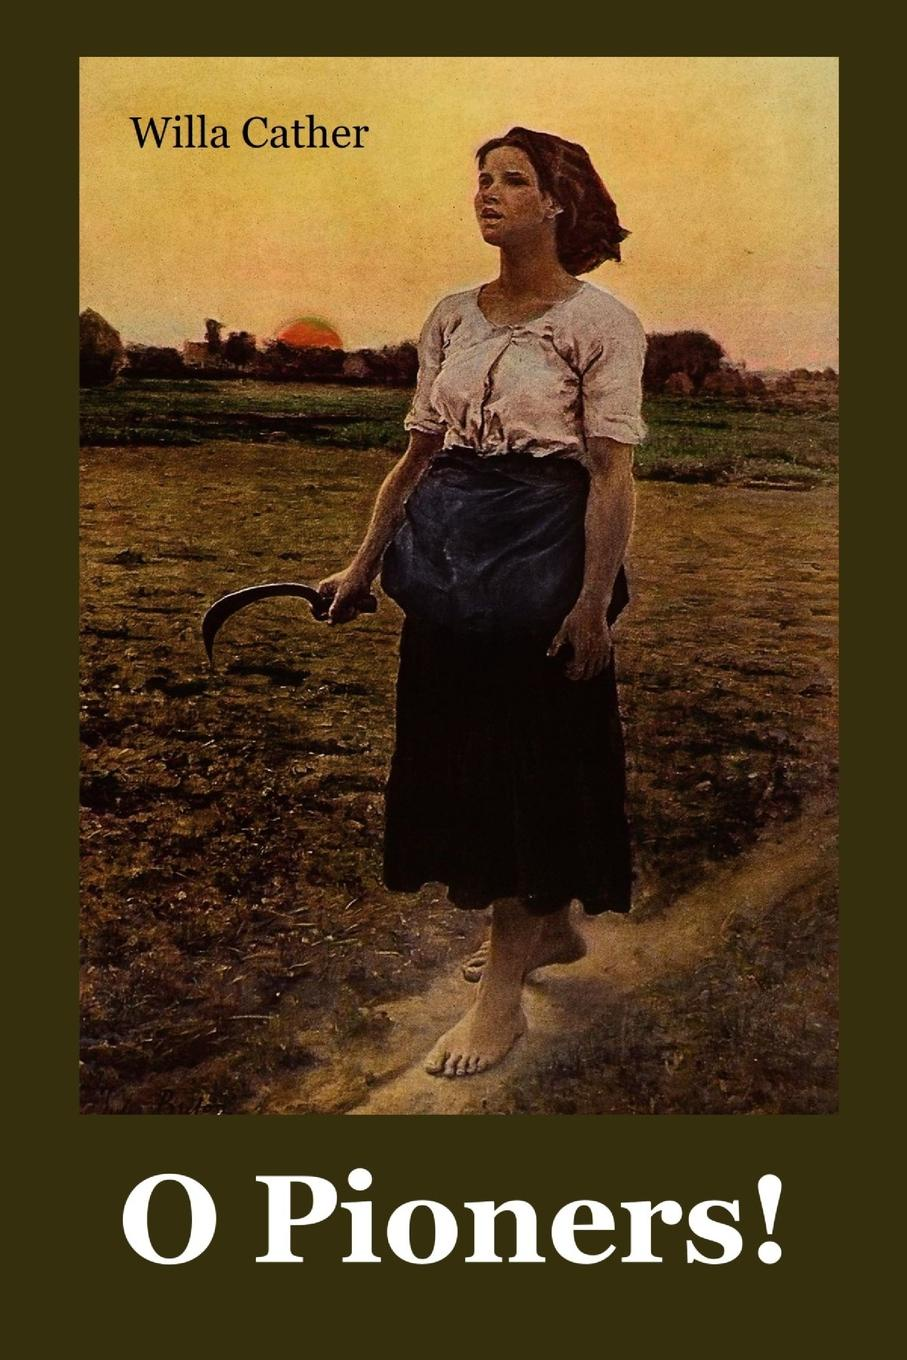 Willa Cather O Pioners!. O Pioneers! Catalan edition цена